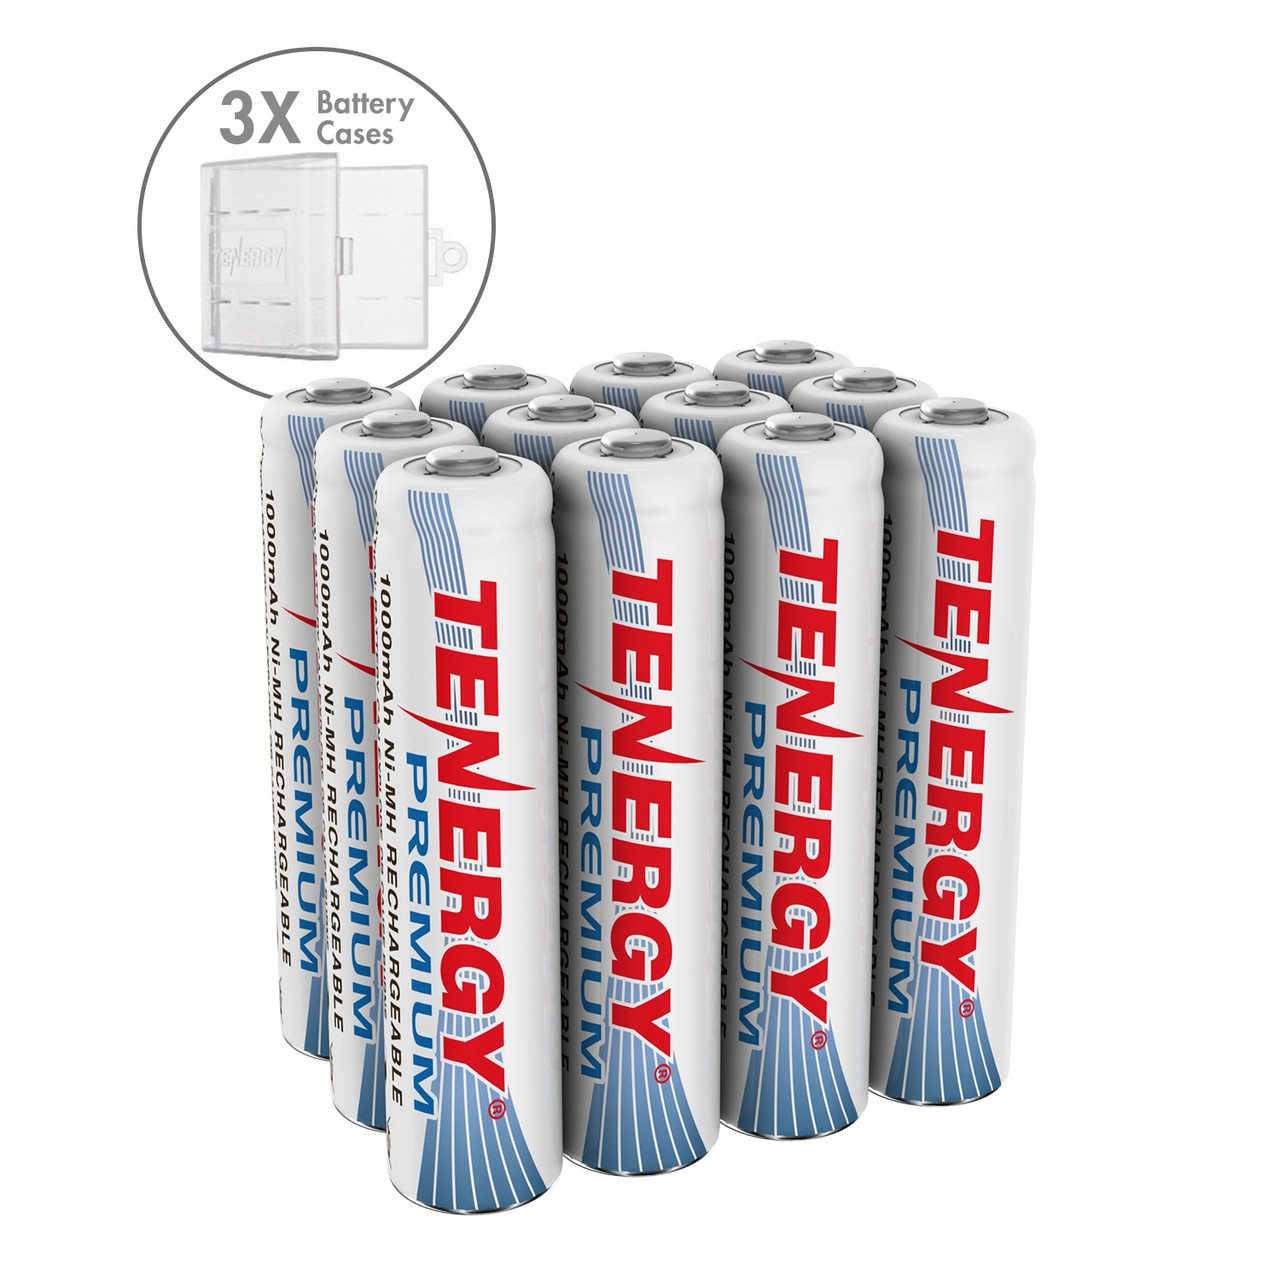 Combo: Tenergy Premium NiMH AAA 1000mAh Rechargeable Batteries, 12-pack (+ 3 x Holders)